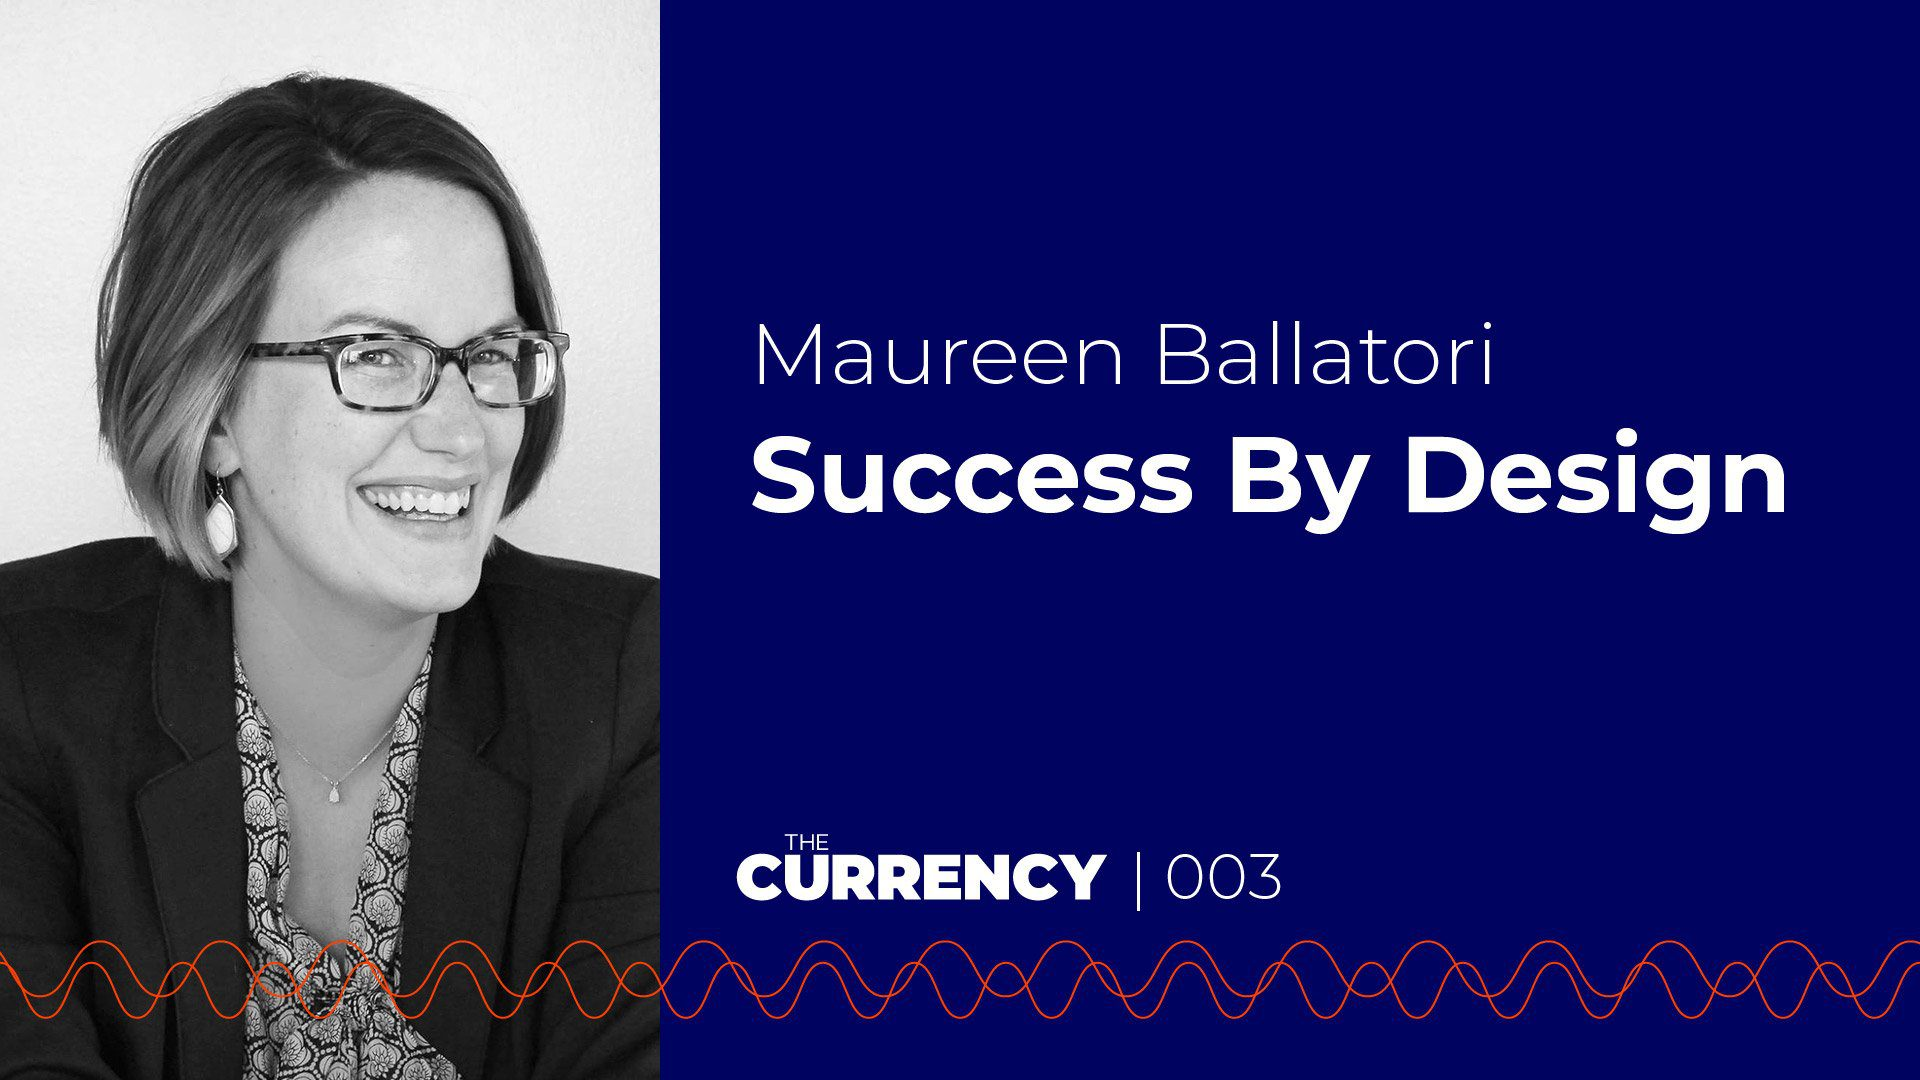 The Currency: [003] Maureen Ballatori & Success by Design